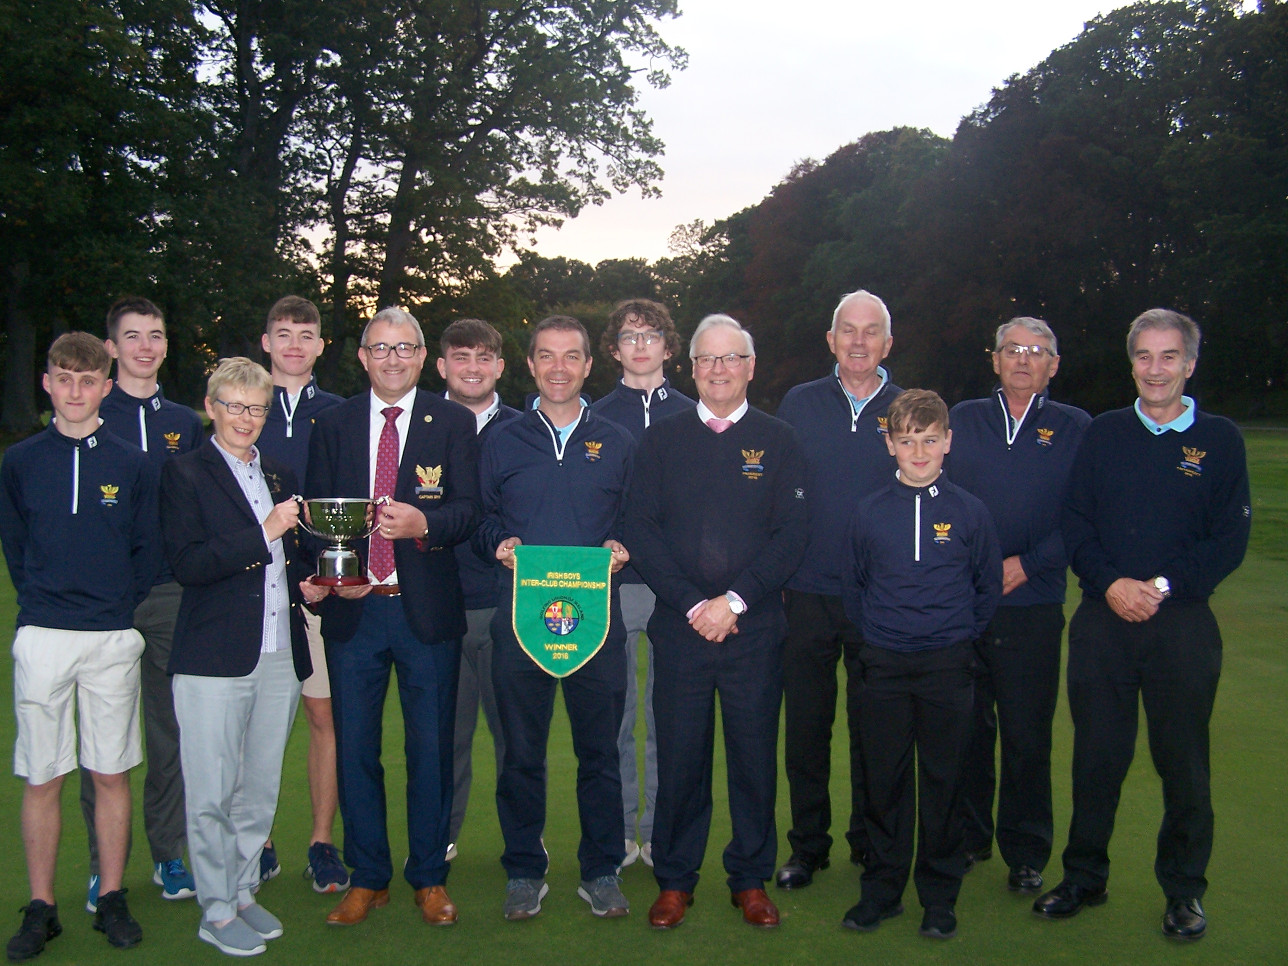 Team back home pictured with Lady Captain Stephanie, Captain Brian, President Joe and team reserves and mentors